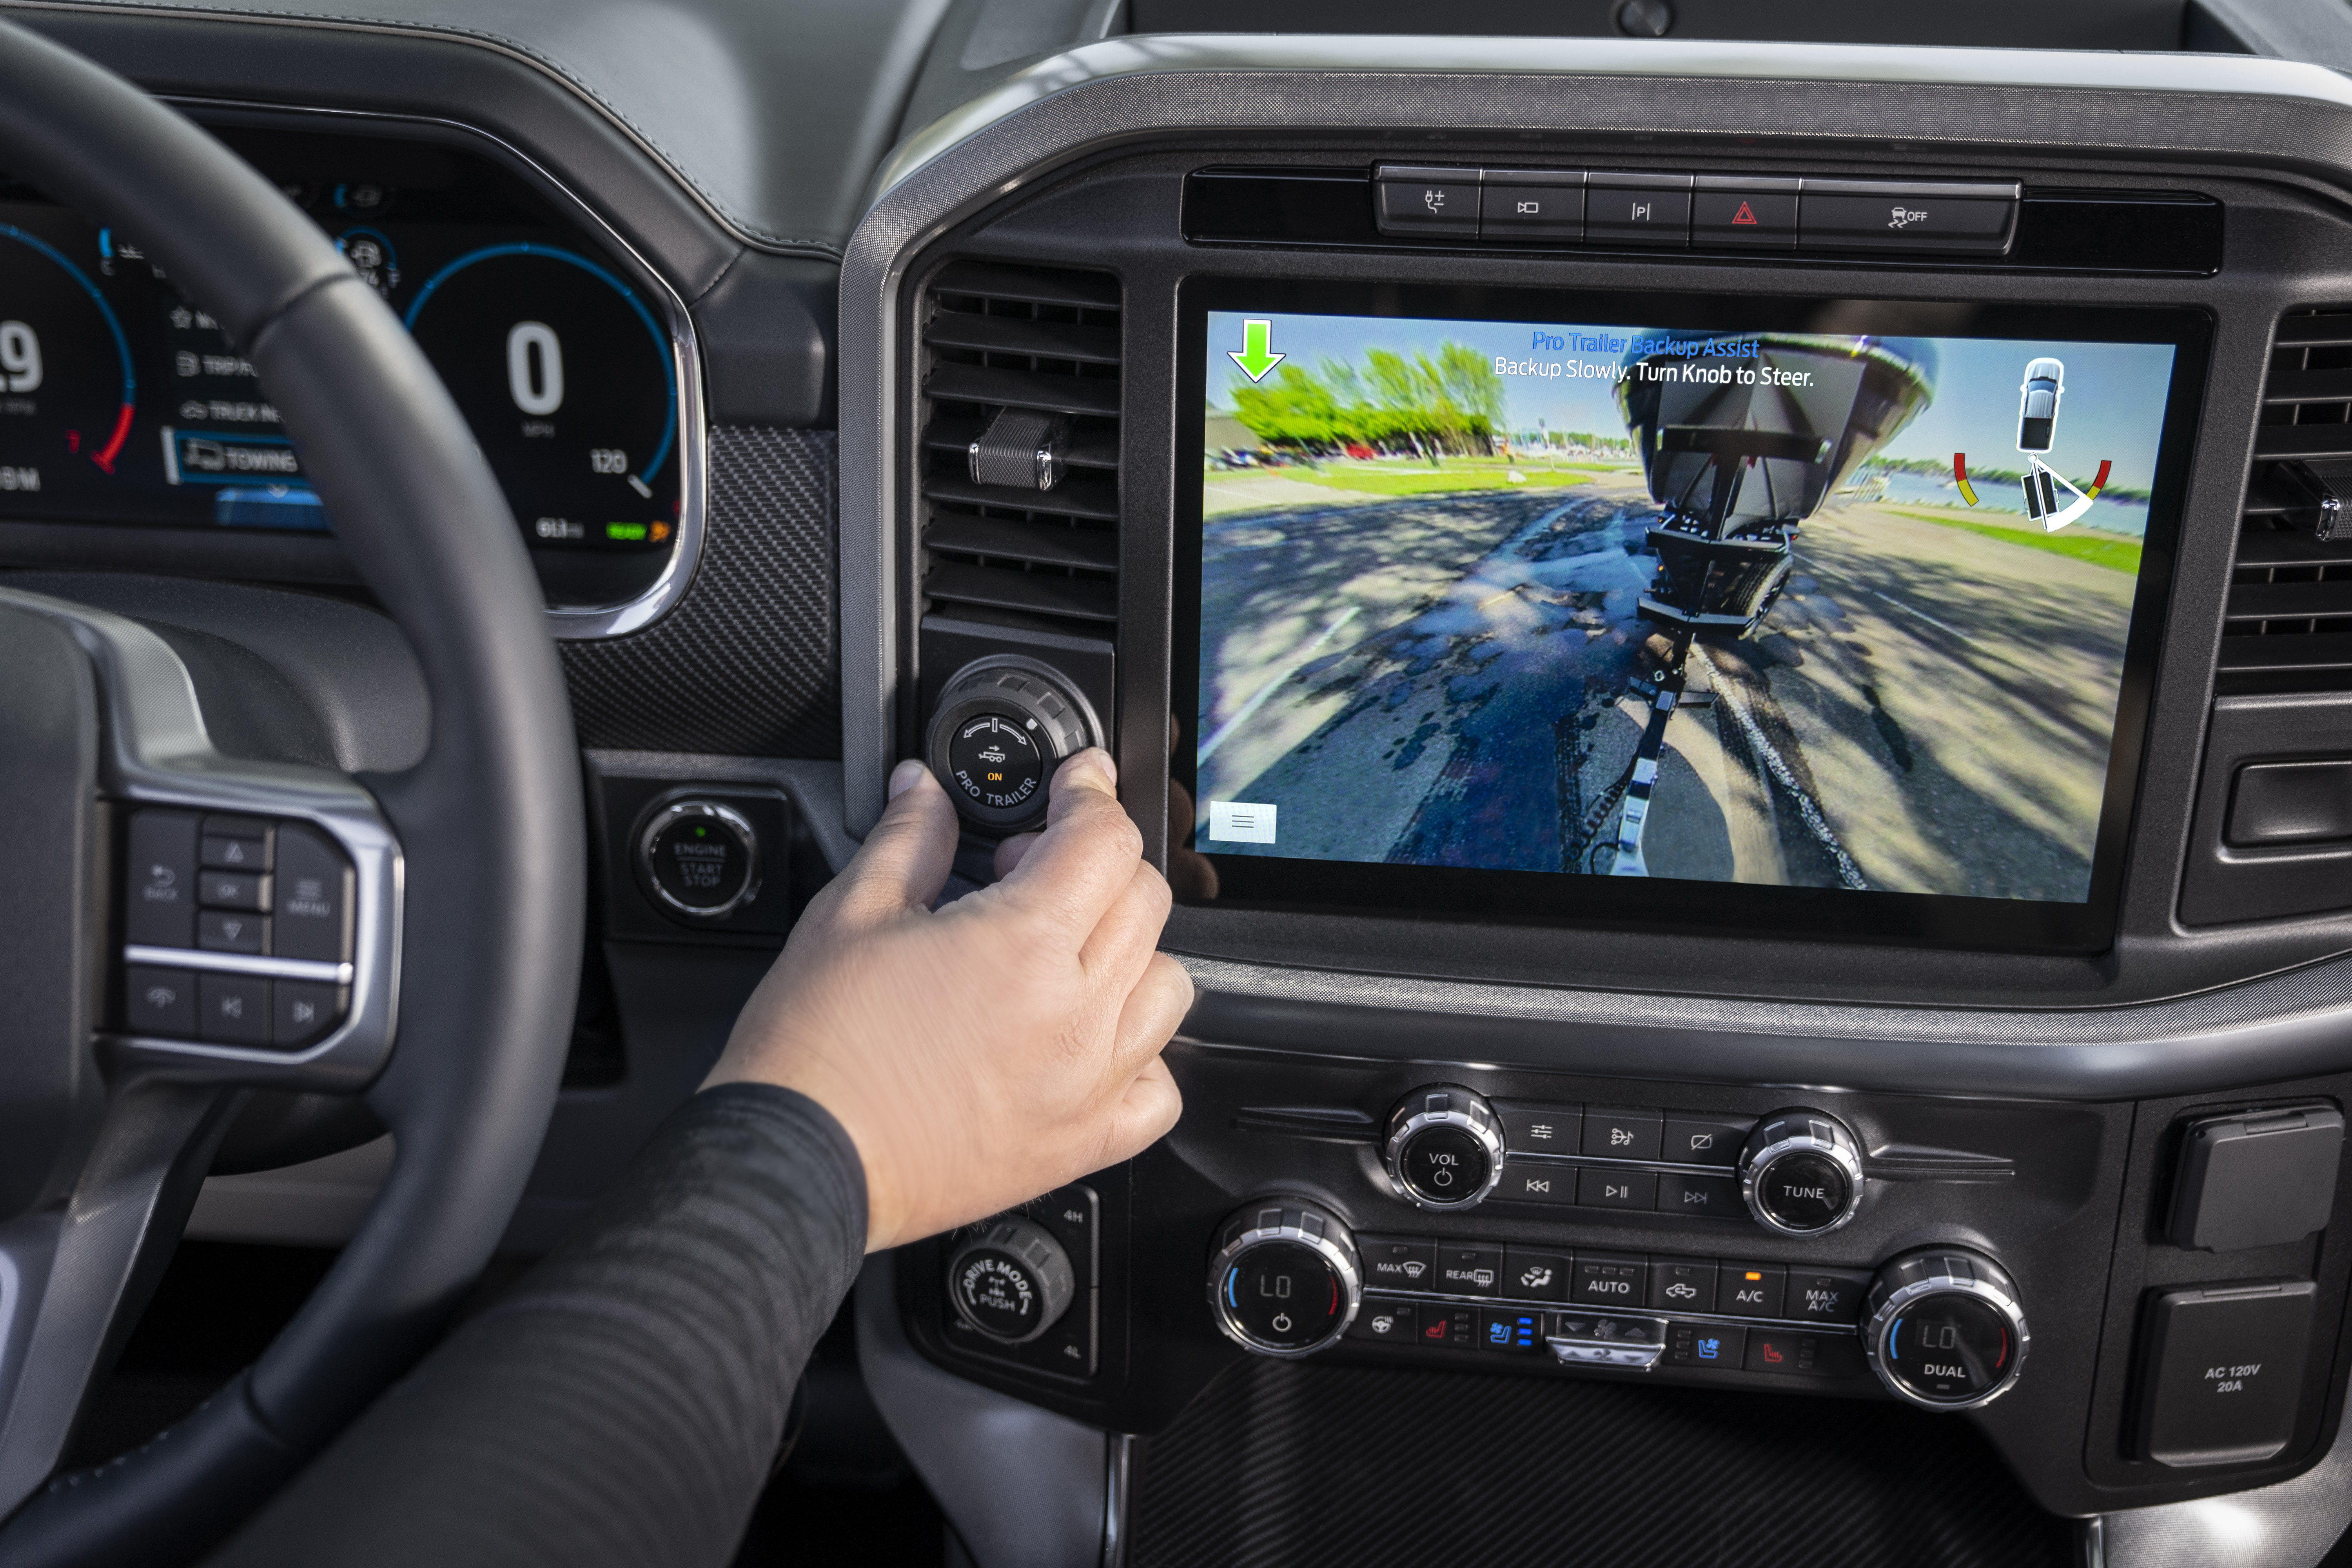 2021 Ford F-150 Trailer Guidance